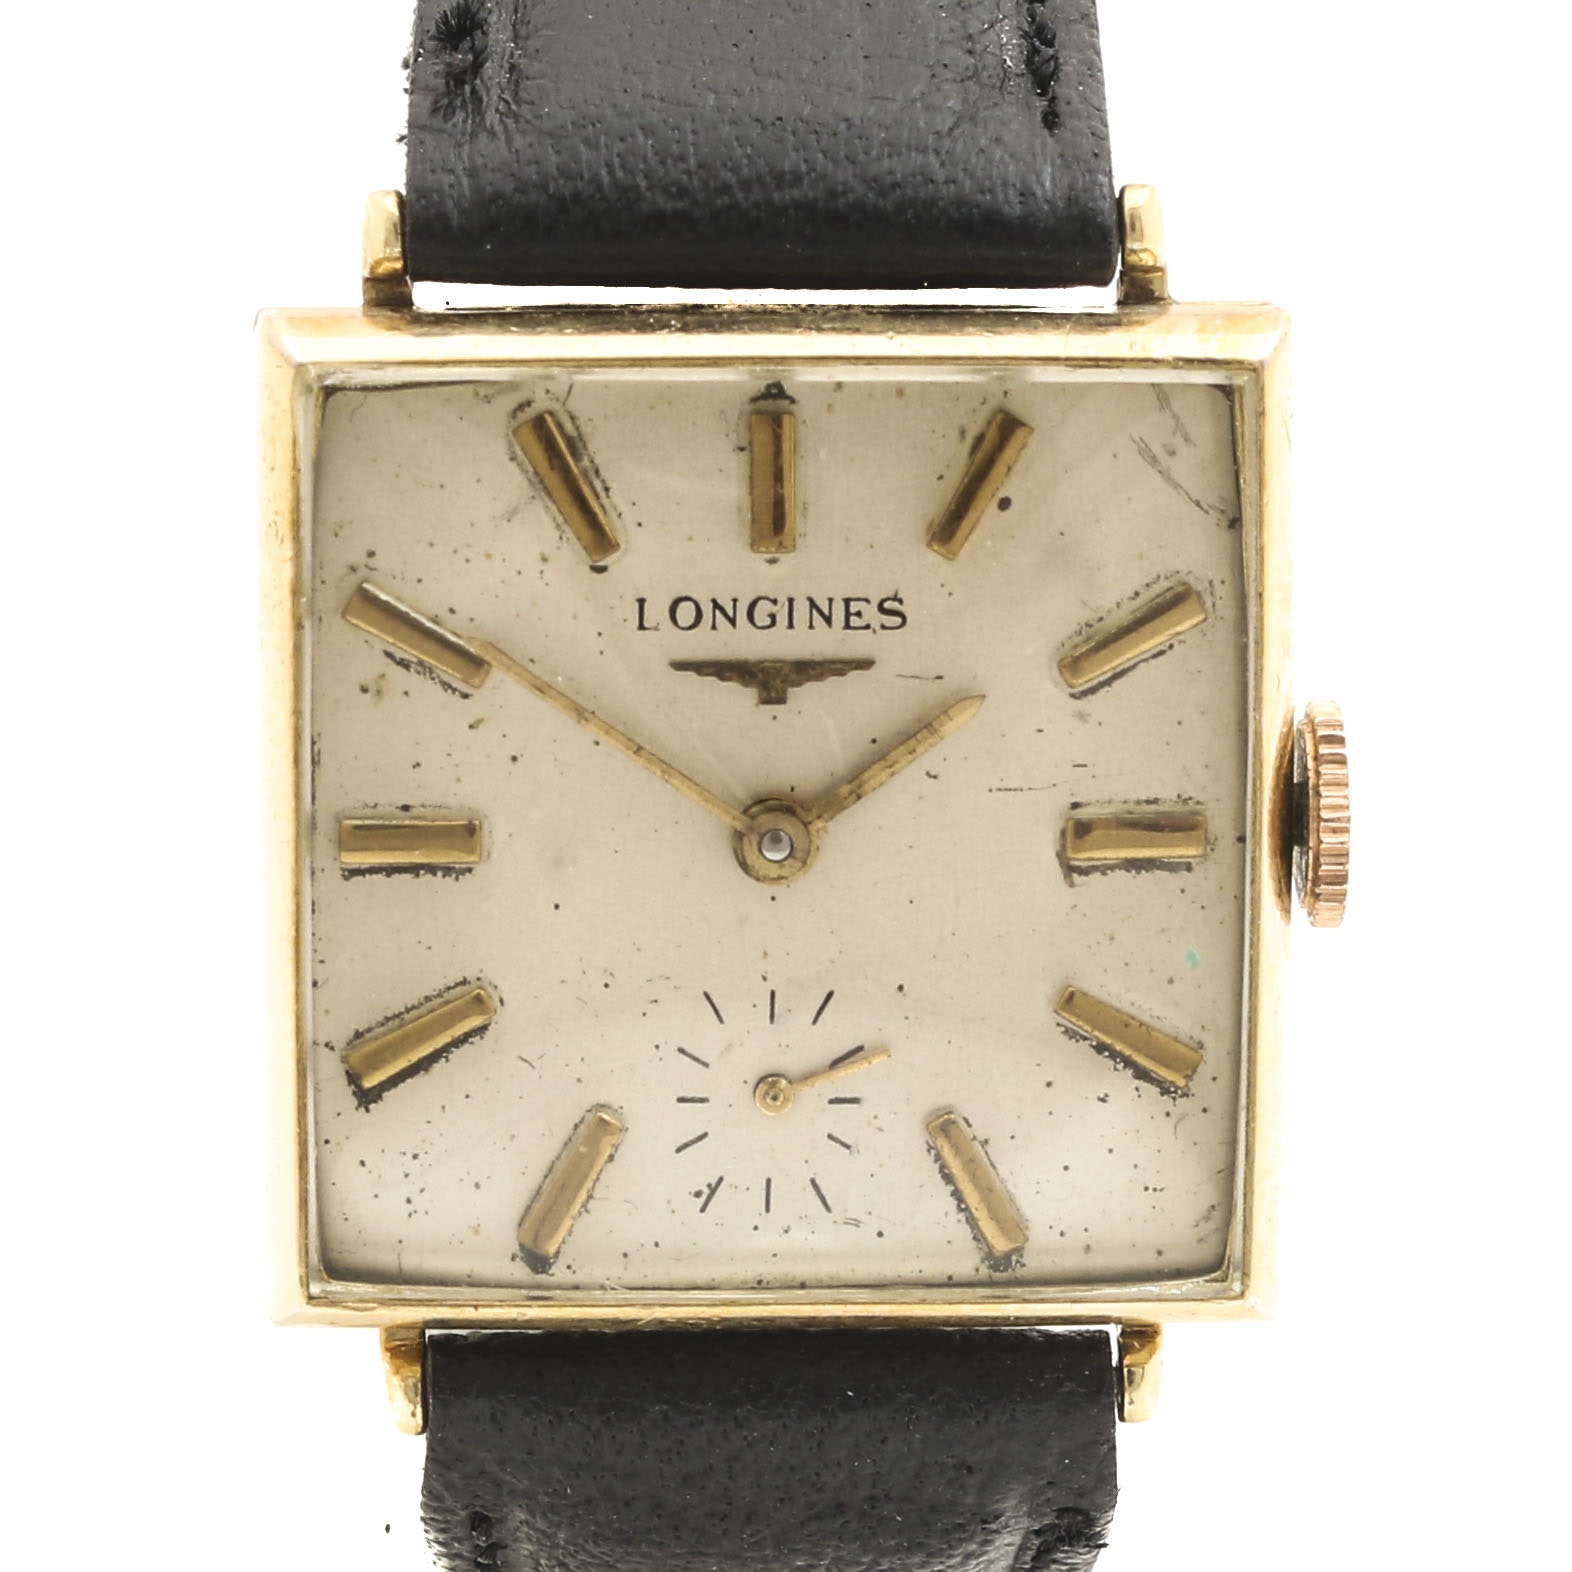 Vintage Longines Gold Filled Wristwatch